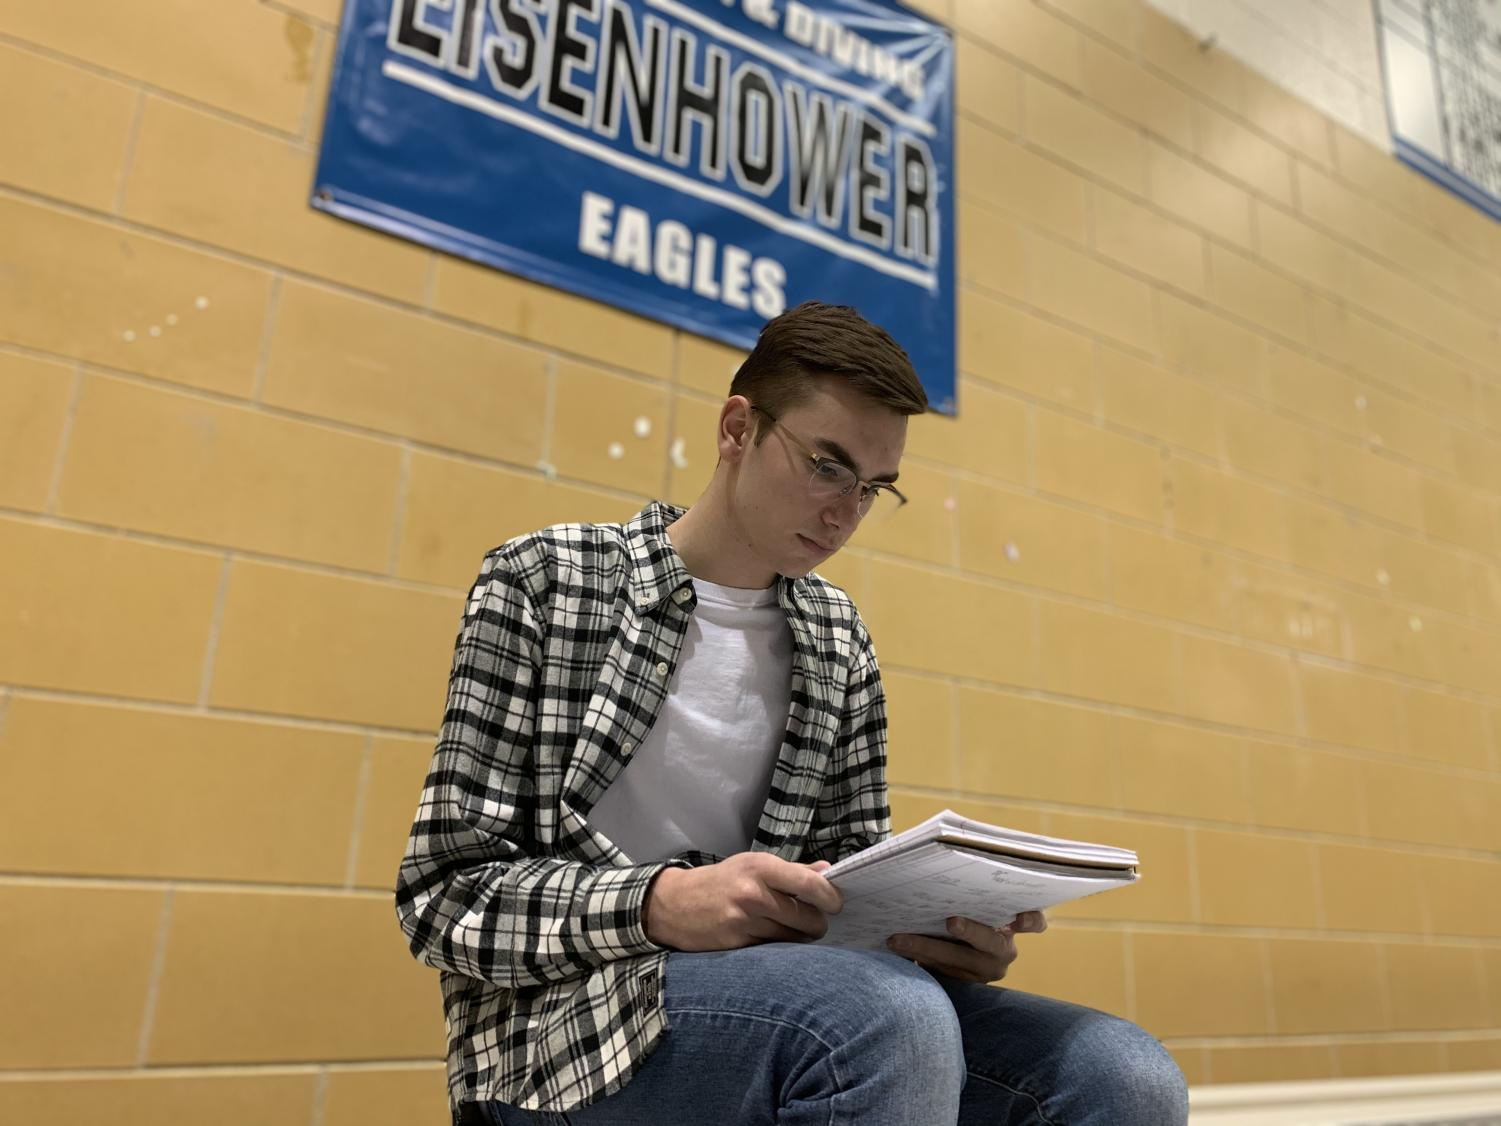 """While studying with free time before practice, senior swimmer Michael Hagen makes sure he knows the material for his Wednesday exam. Michael practiced dryland exercises after studying with the meets being the week of exams. """"I'm excited to see how we do and how we can improve times,"""" Hagen said."""